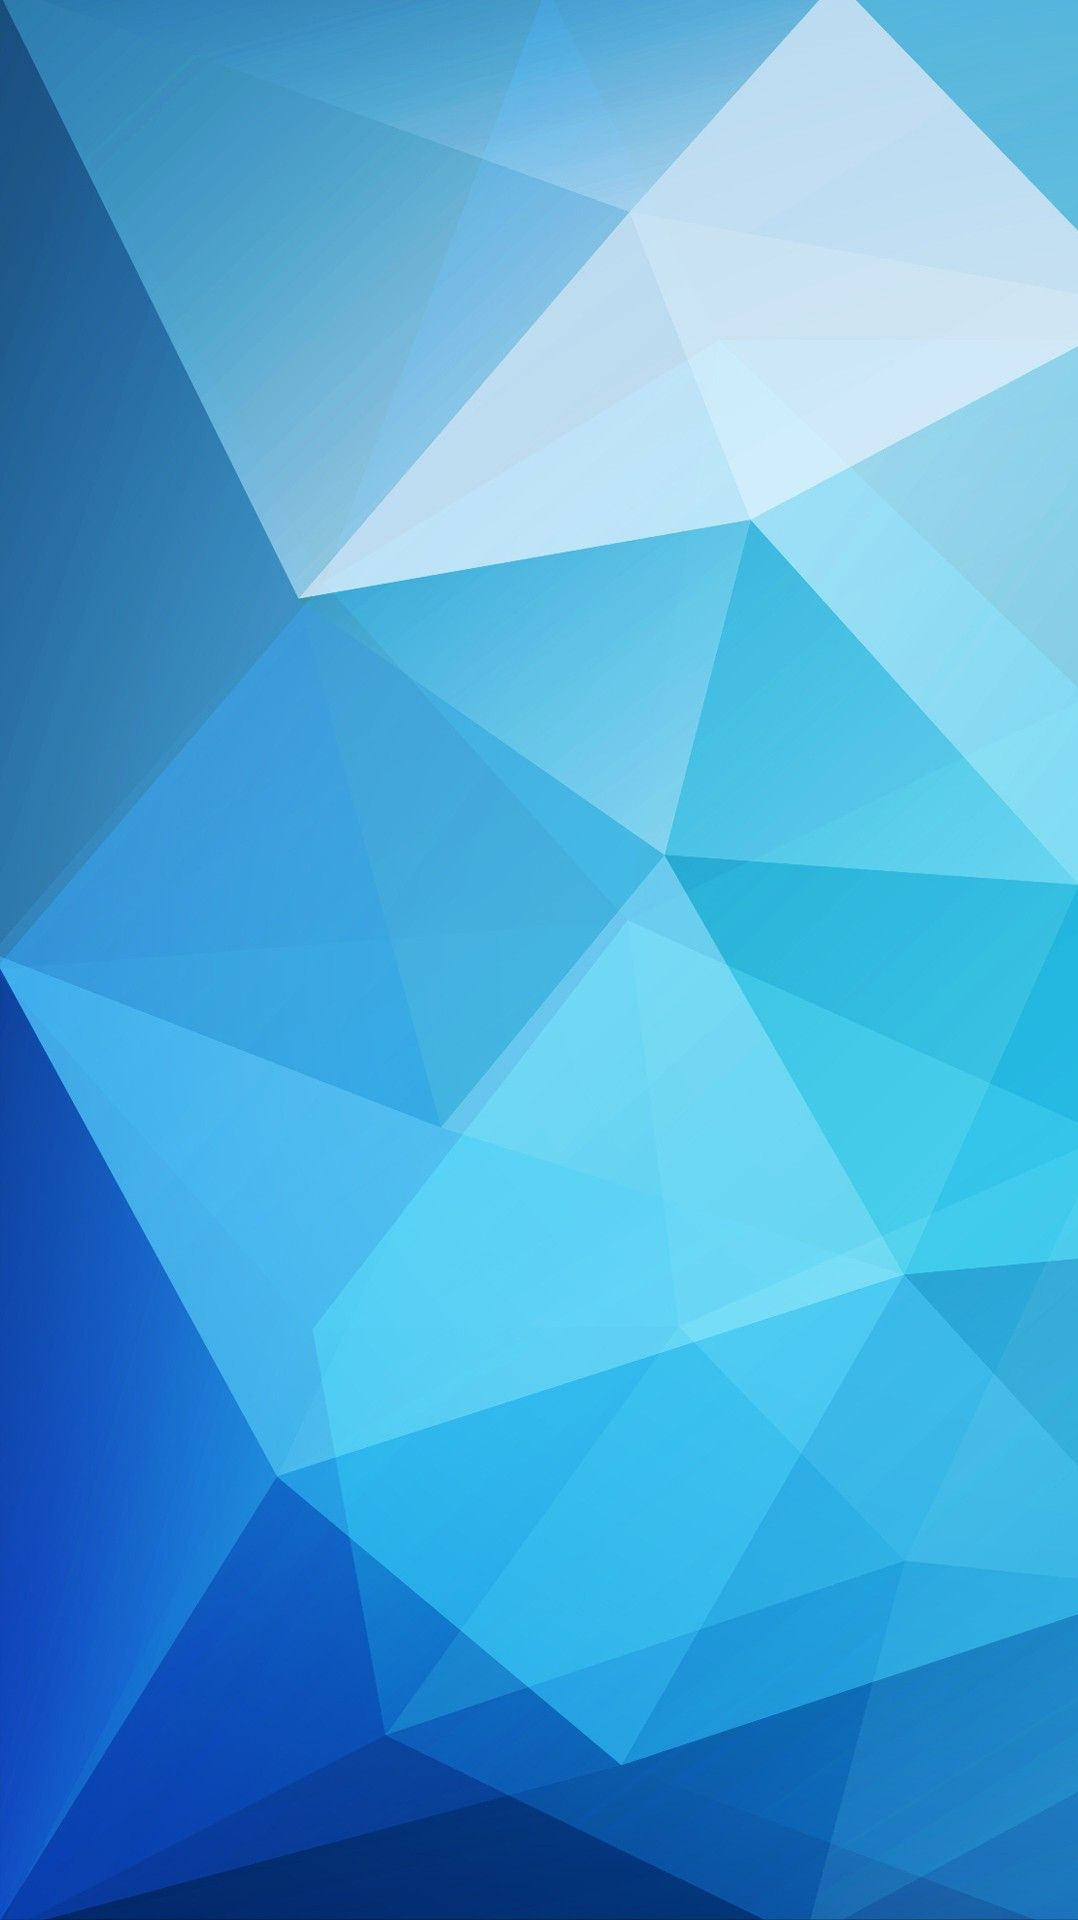 Blue low poly wallpaper iphone wallpaper iphone for Blue wallpaper